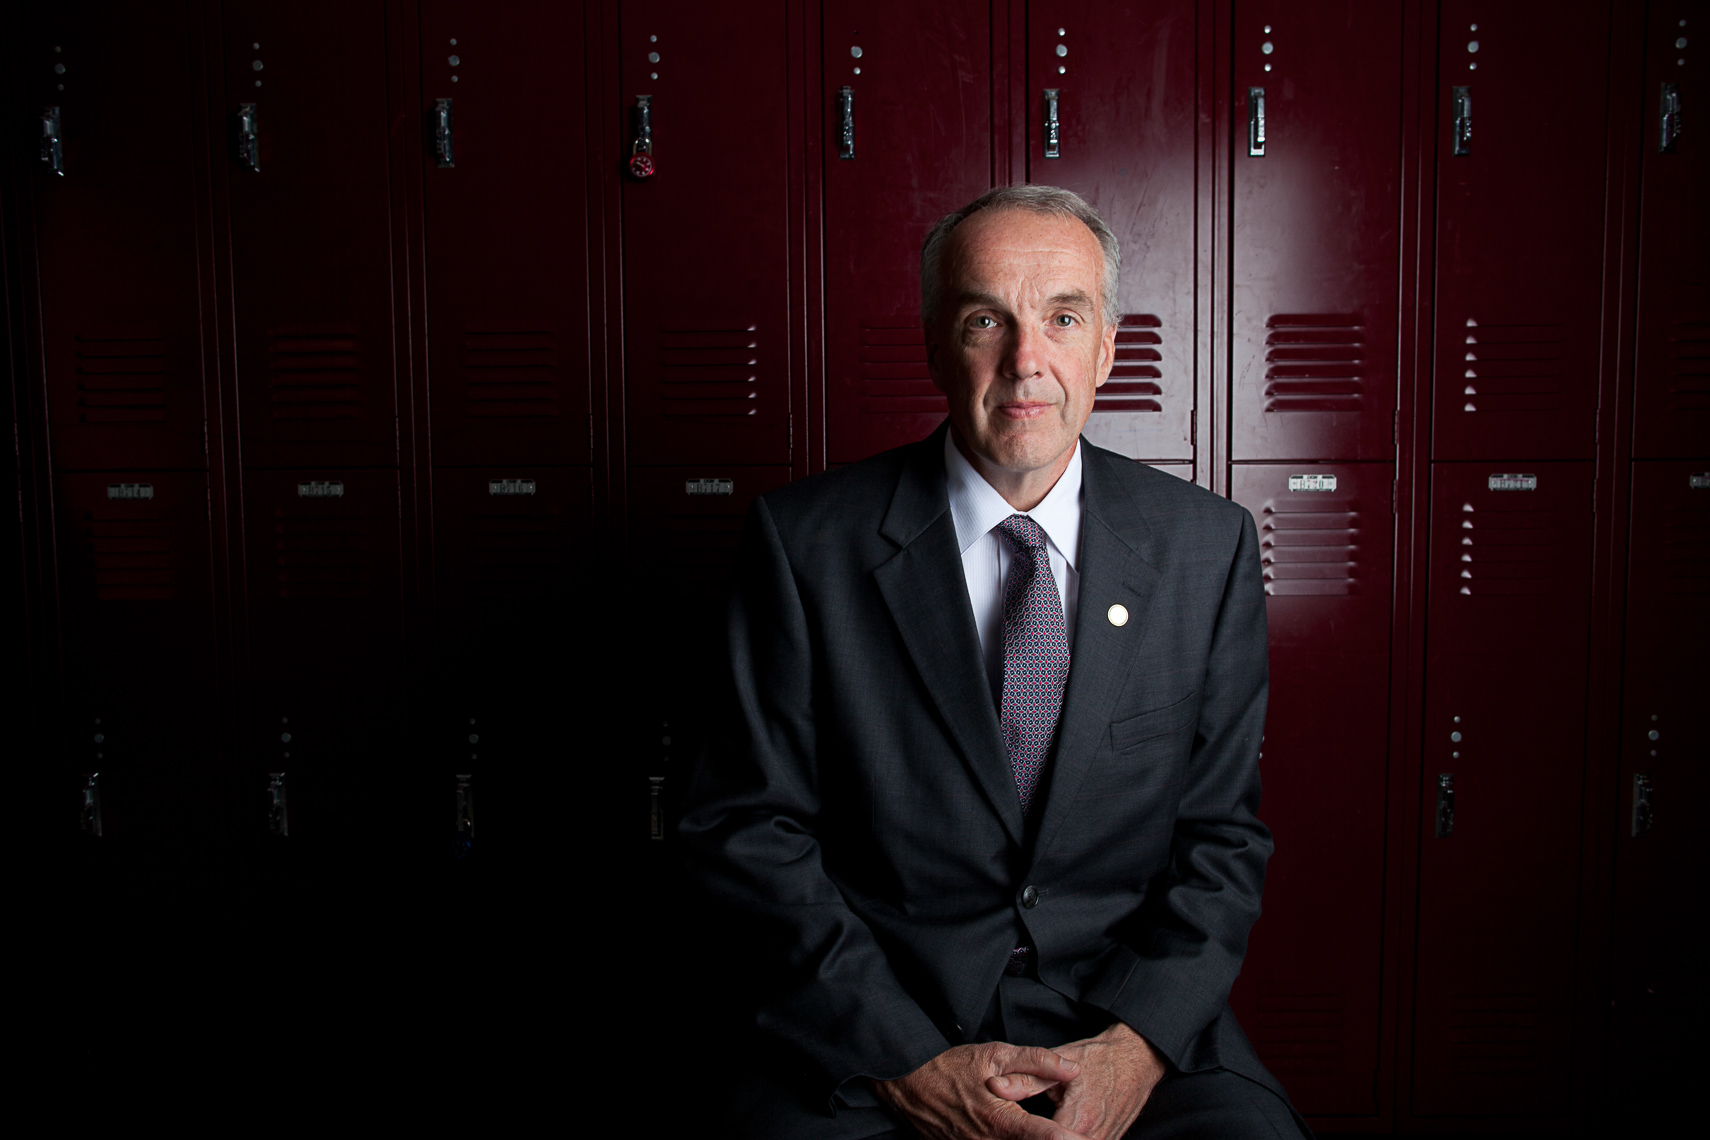 019_0001_michael_foran_principal_new_britain_school_commercial_portrait_corporate_editorial_advertising__portrait_photographer_hartford_ct_photojane_photojane